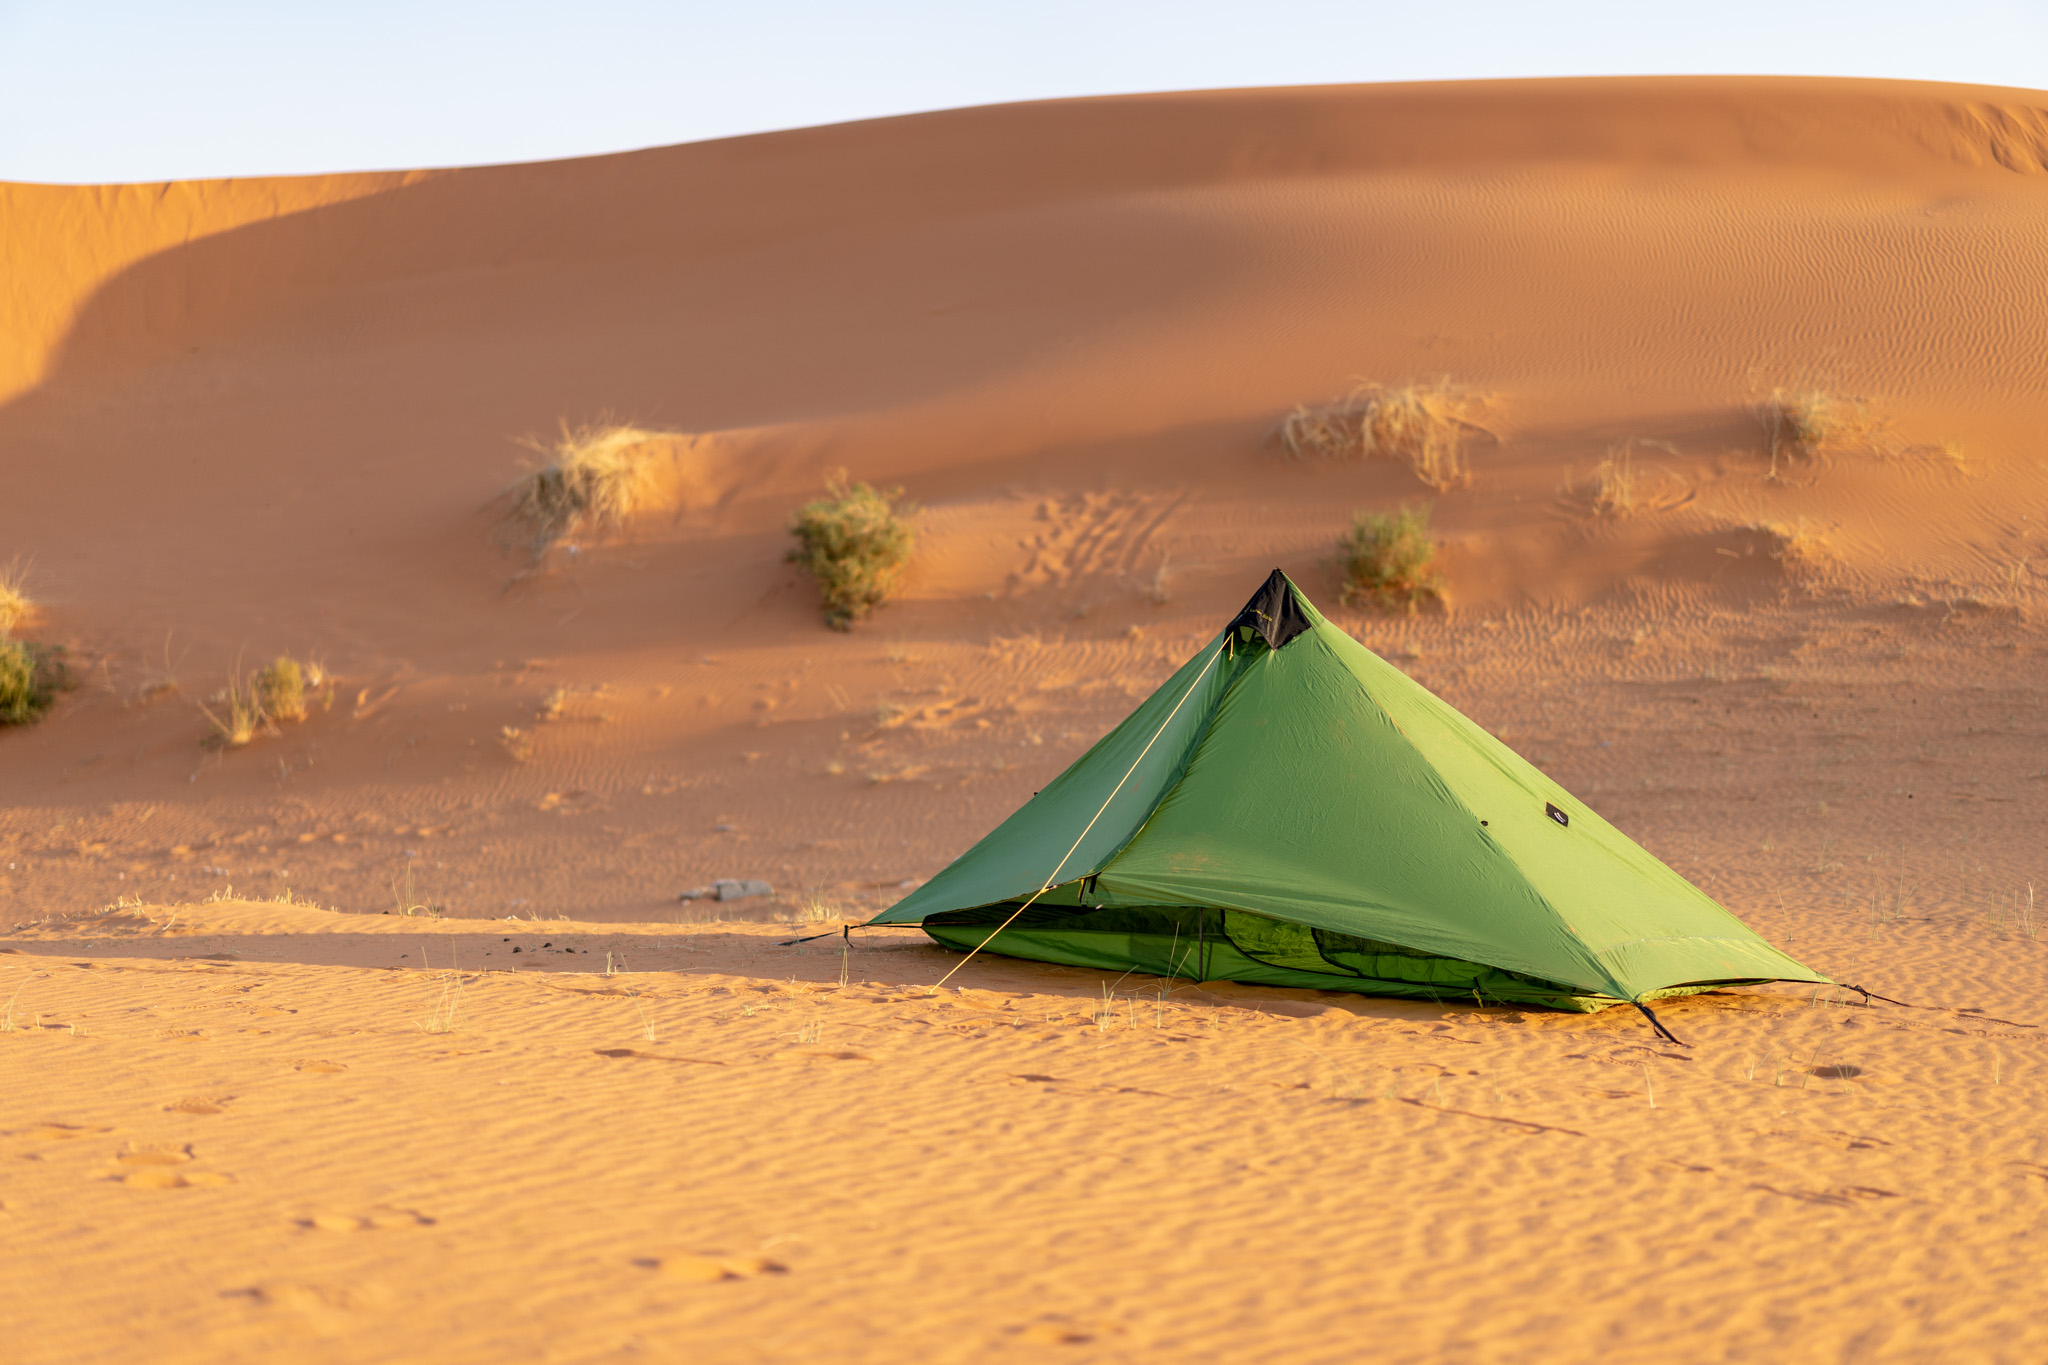 Camping in the red sand dunes near Riyadh